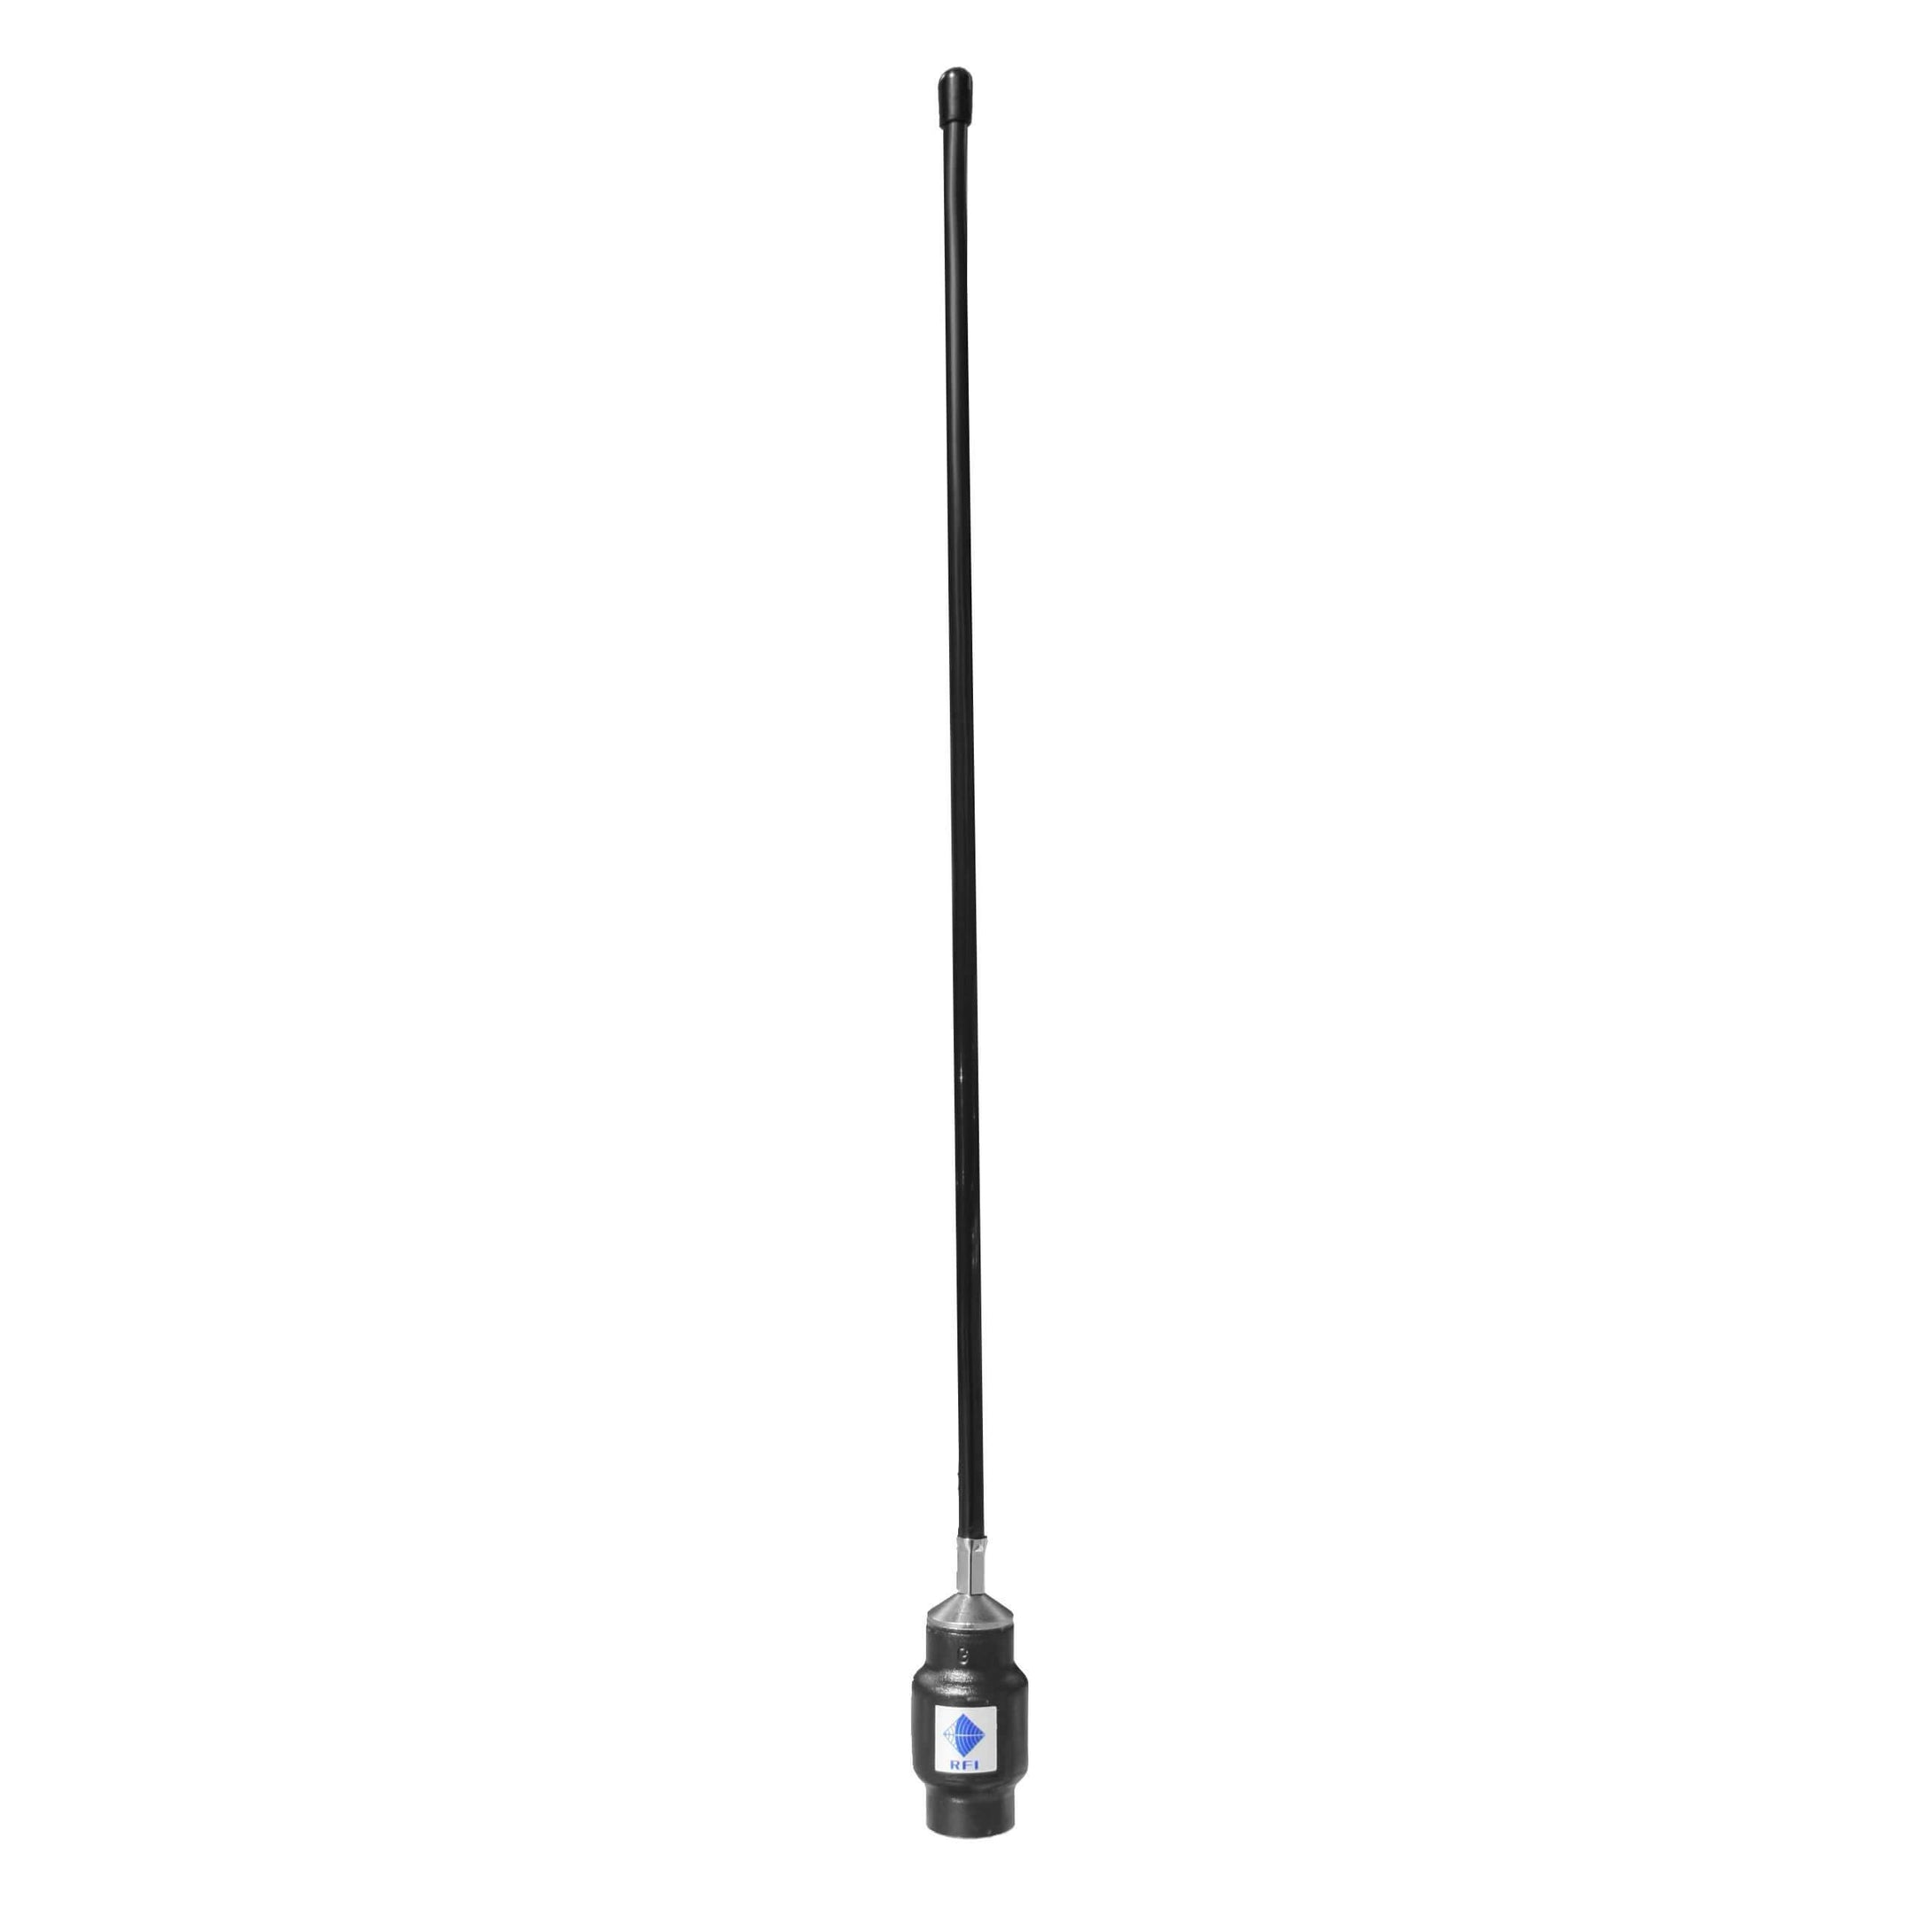 RFI CD51-68-50 UHF Ground Independent Mopole Antenna (450-520MHz) - MBC Base - Point to Point Distributions